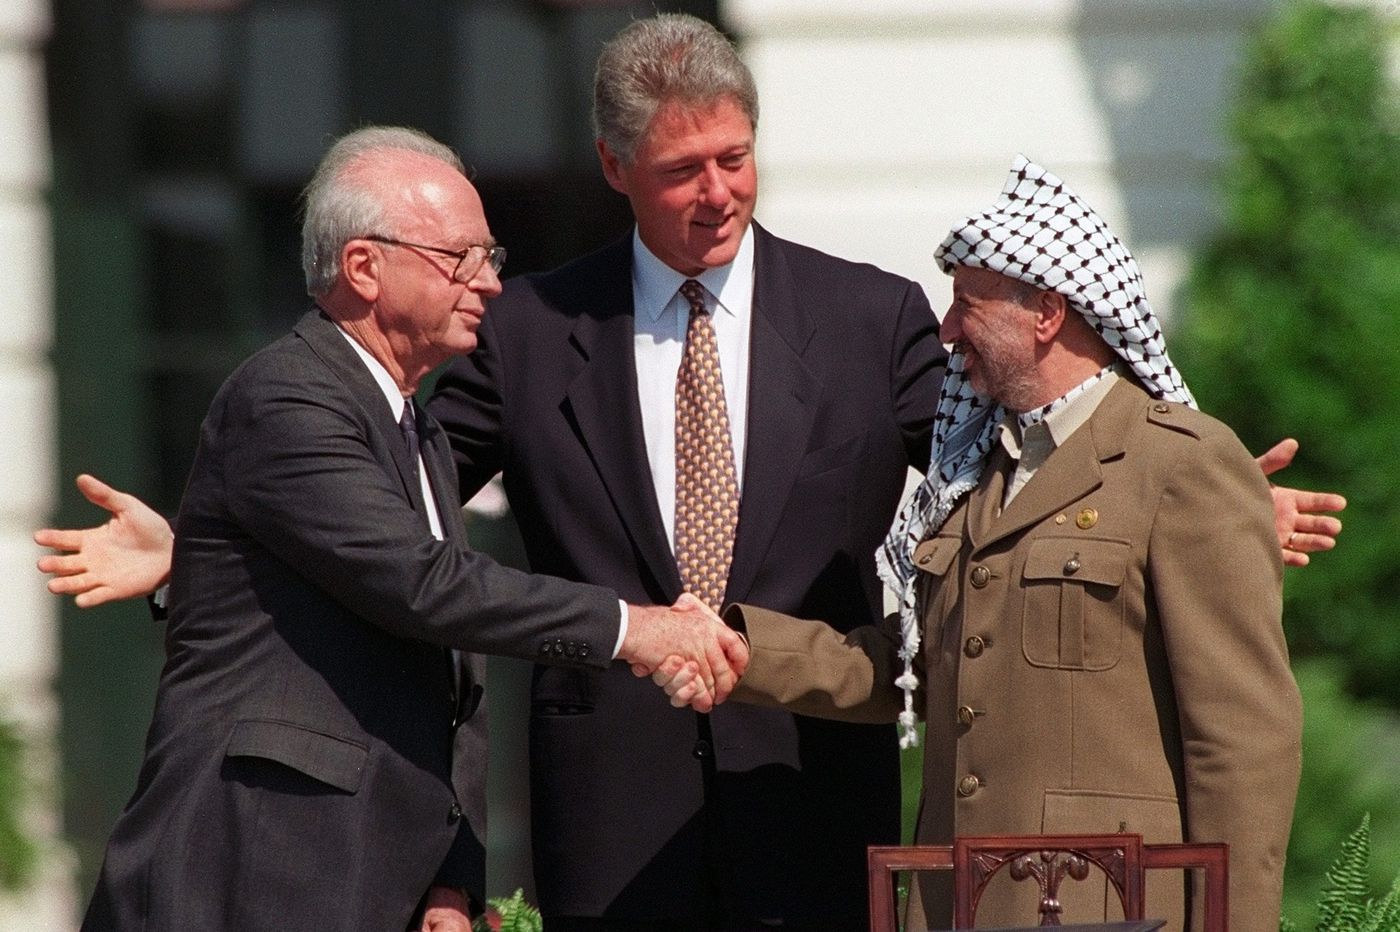 Mideast peace 'deal of century' eludes Trump, 25 years after Oslo Accords | Trudy Rubin